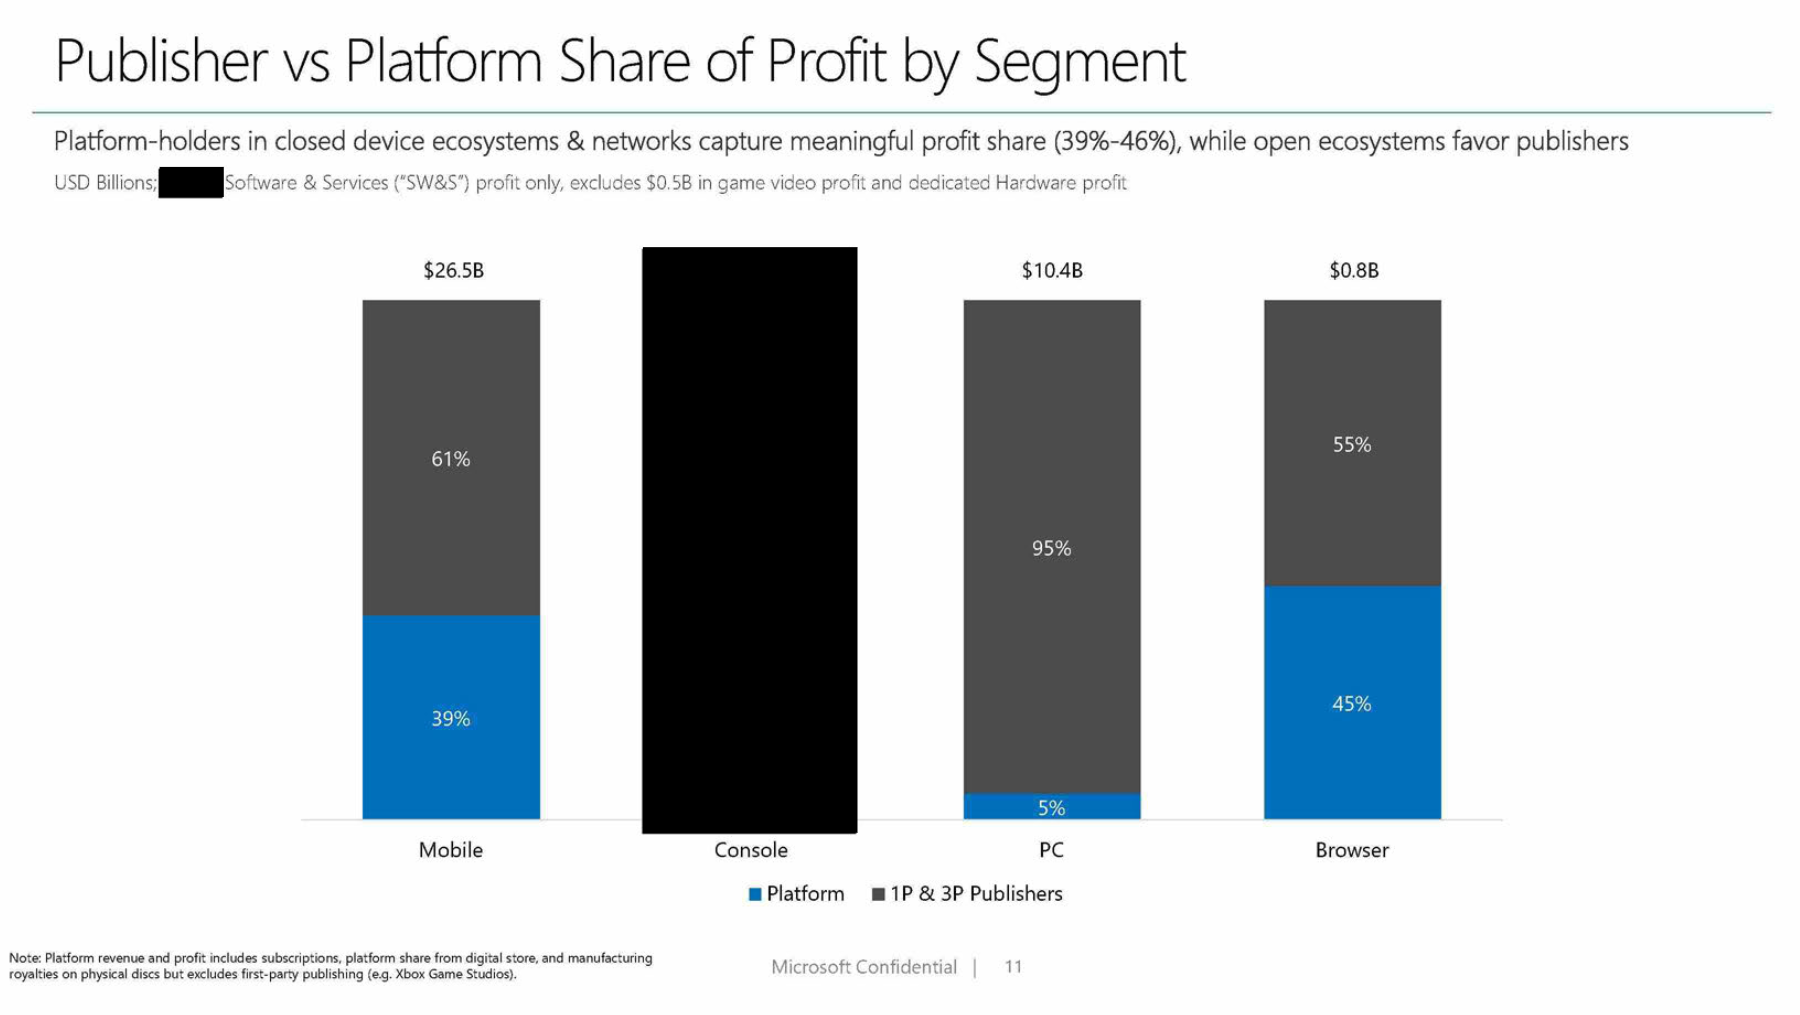 Microsoft's internal documents show that closed platforms rake in a larger share of profits than open platforms.